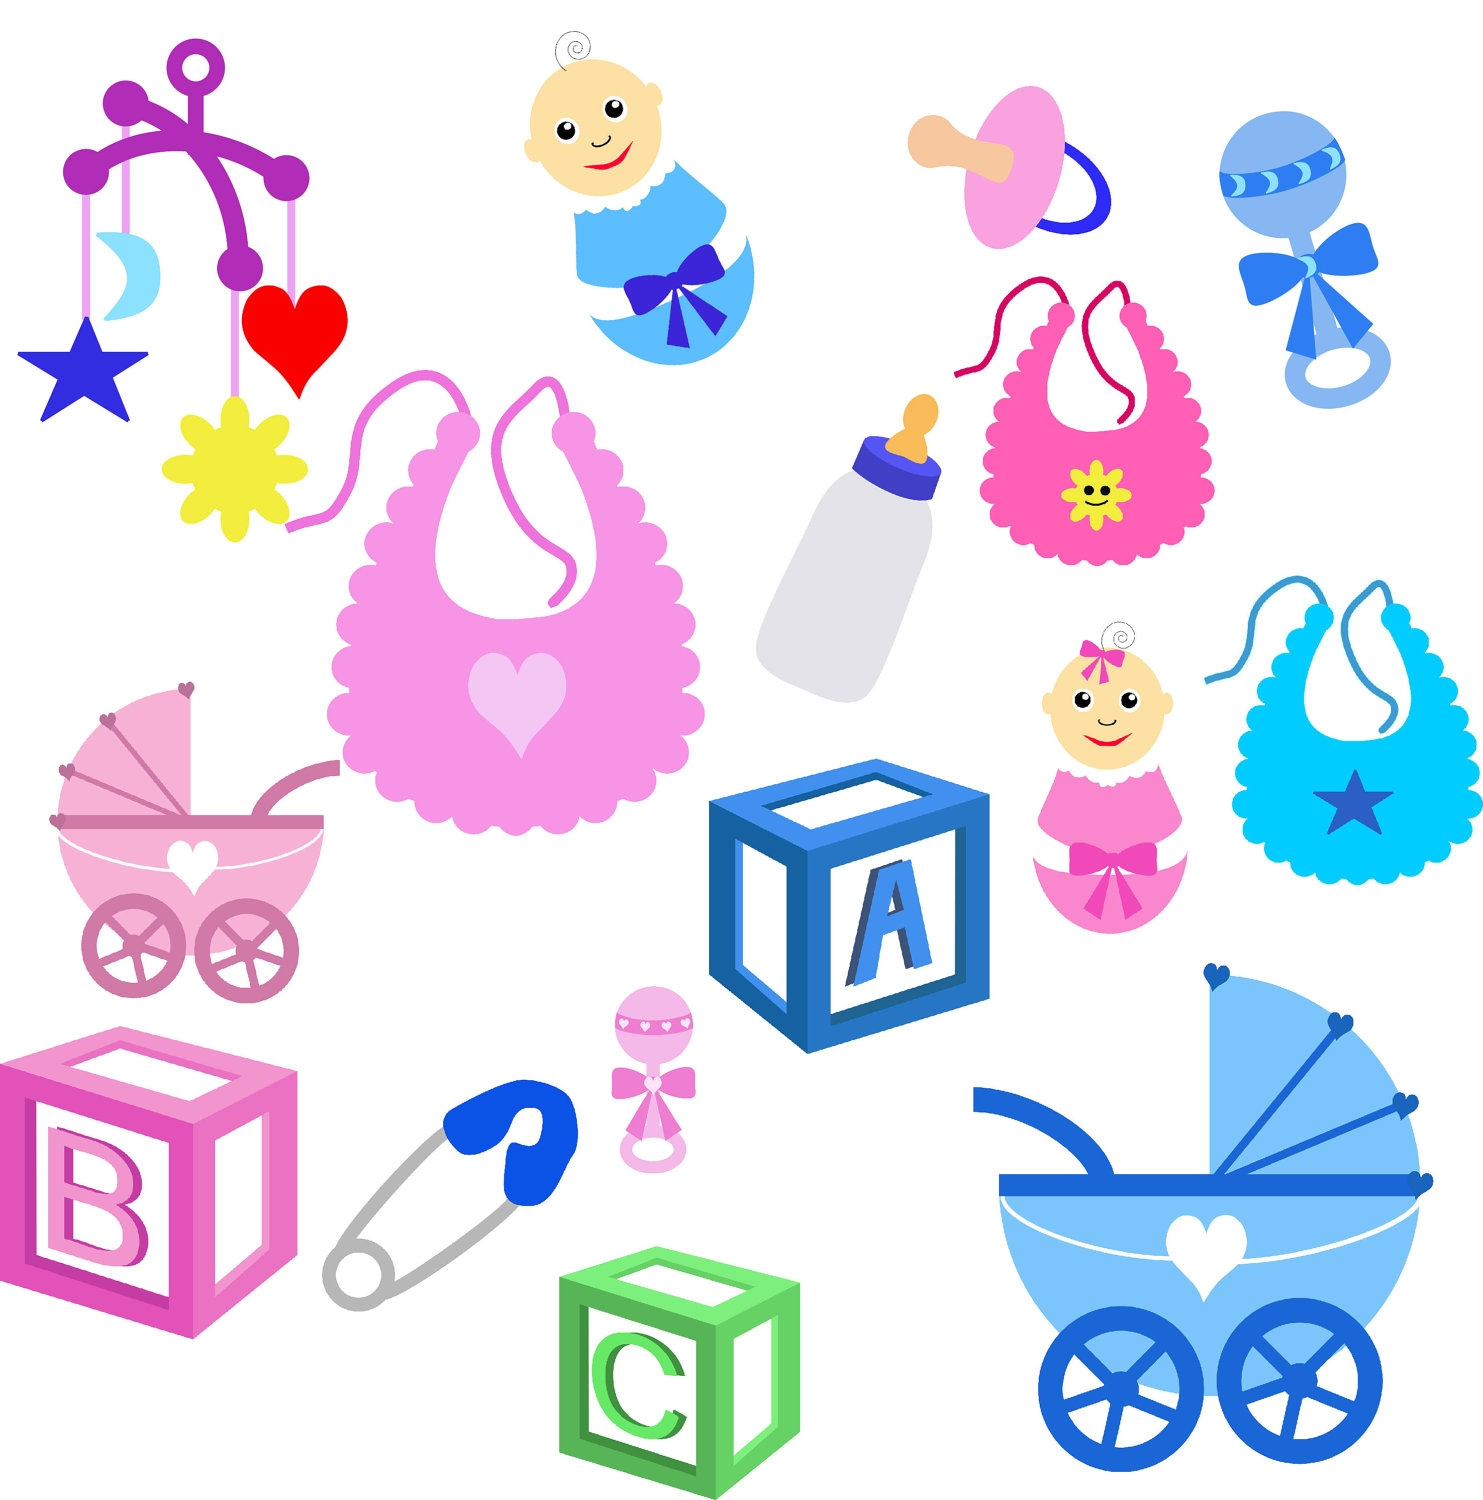 Baby Items Clipart & Baby Items Clip Art Images.